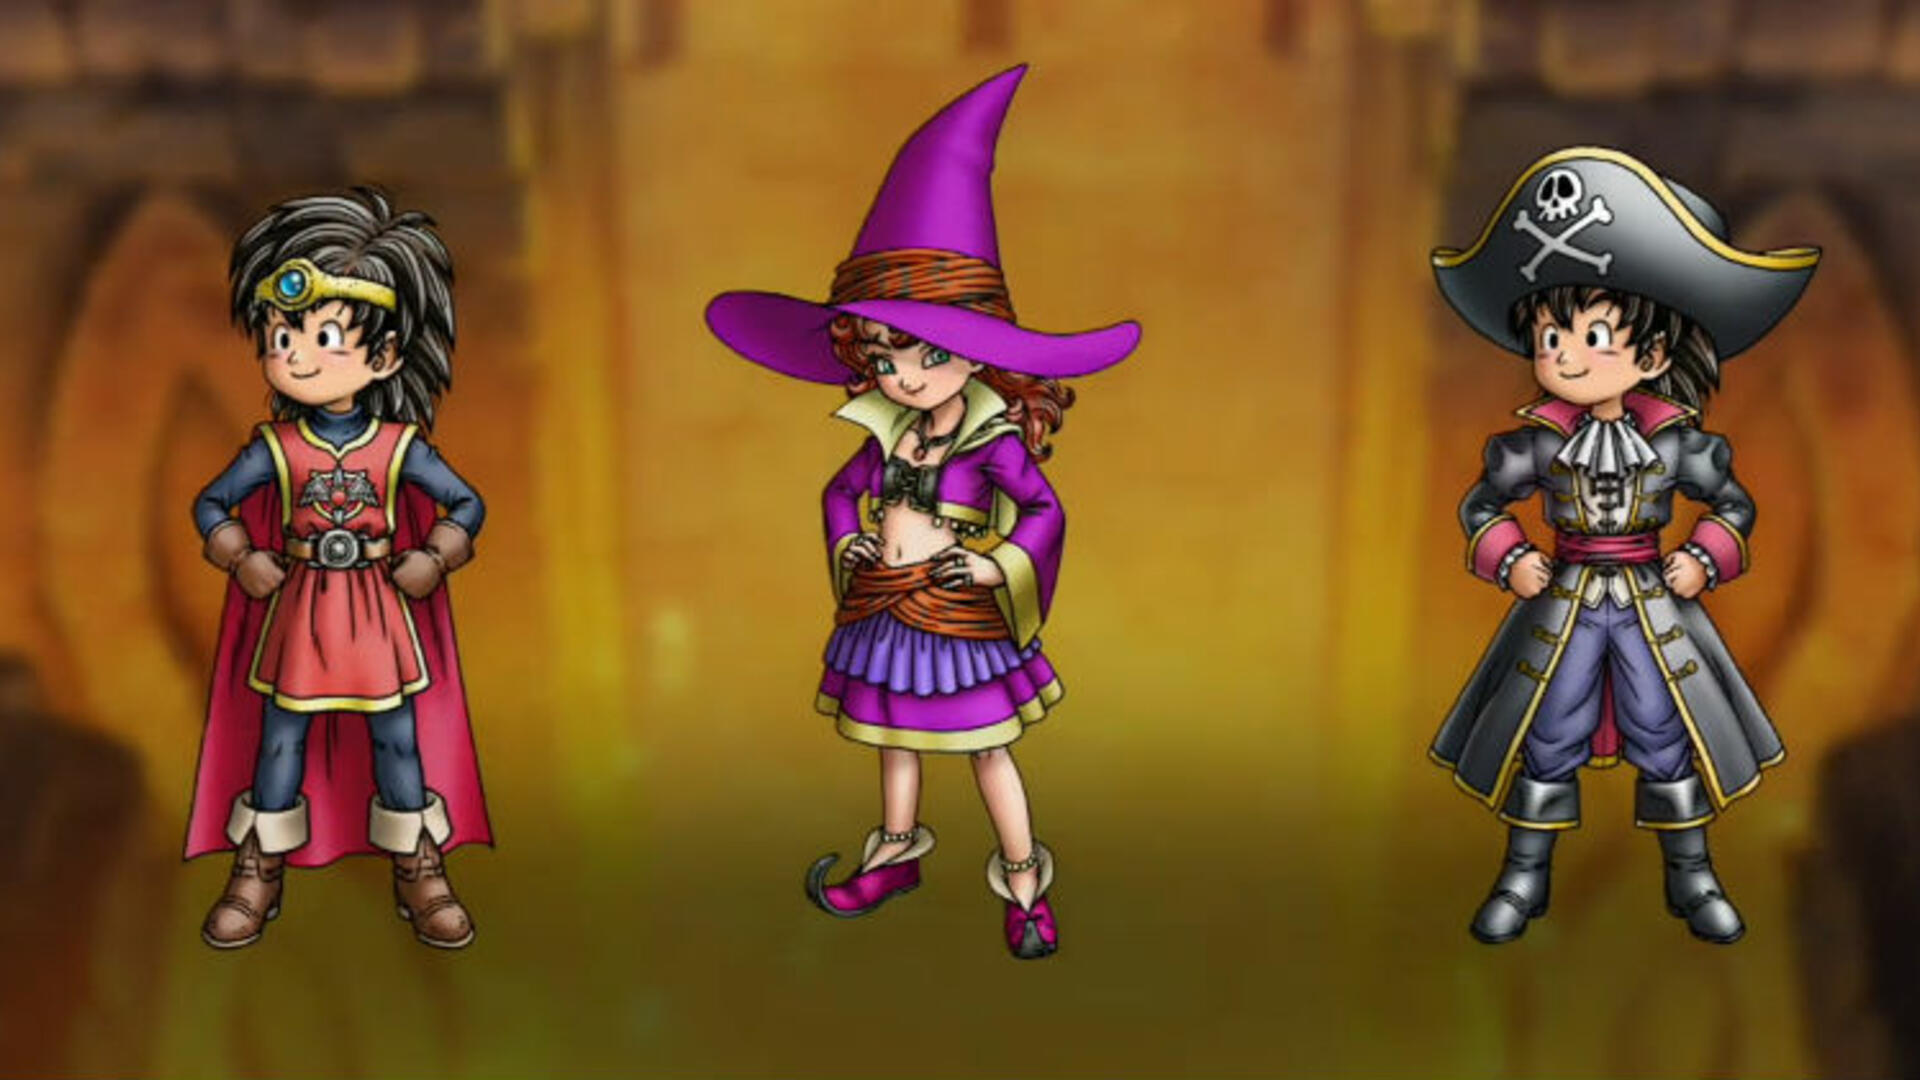 Dragon Quest 7 3DS Pirate Guide: Spells, Abilities, Stats, and More